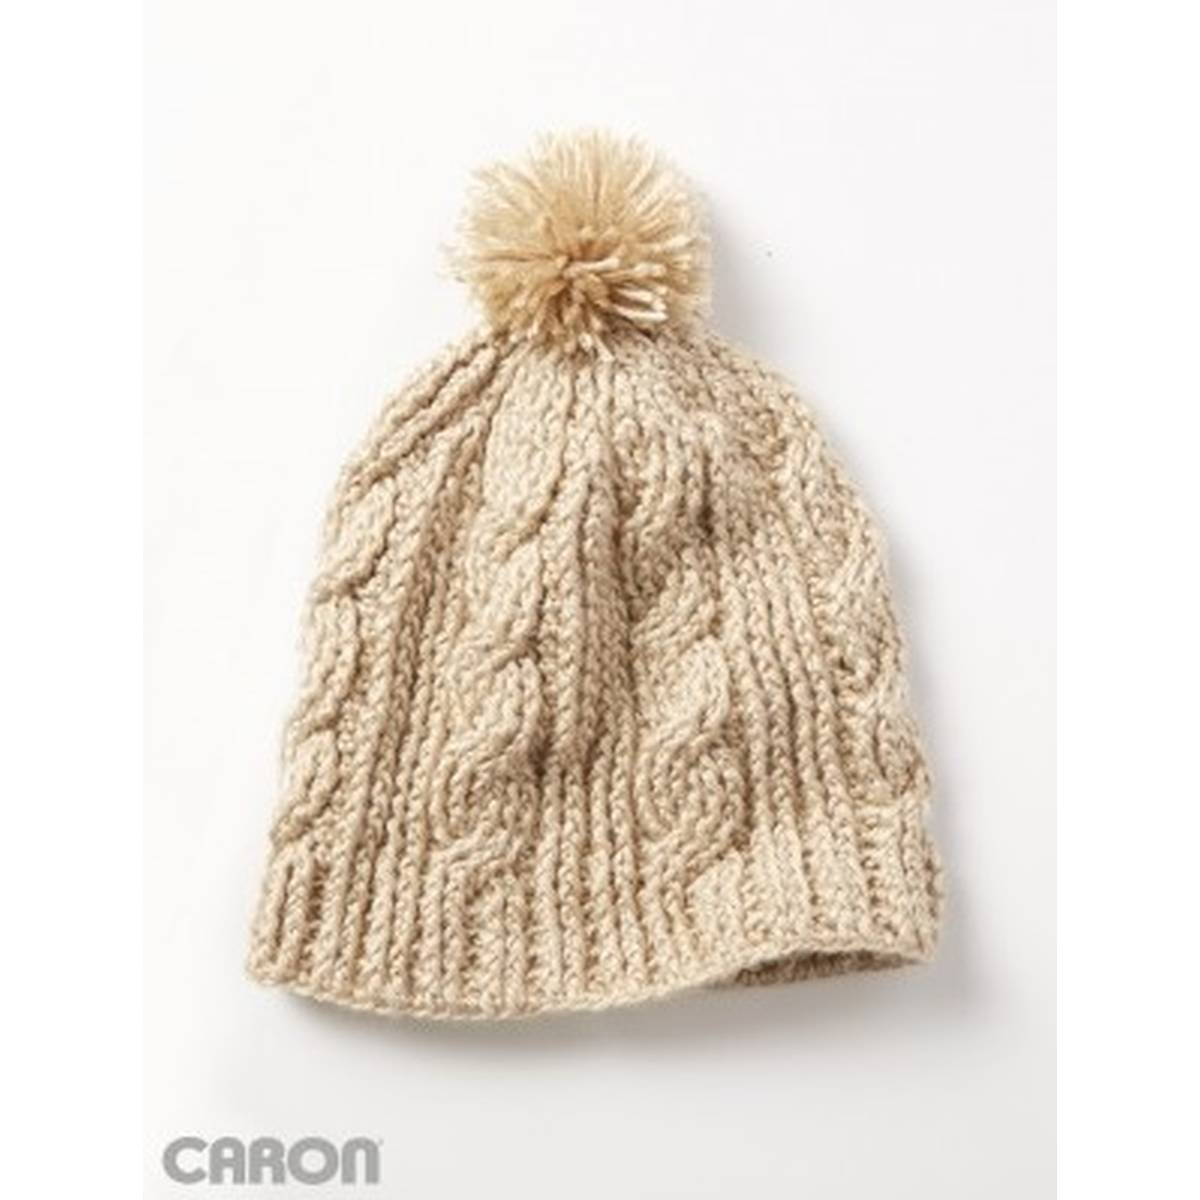 Free Knitting Patterns For Hats Uk Free Pattern Caron Cable Twist Hat Hobcraft